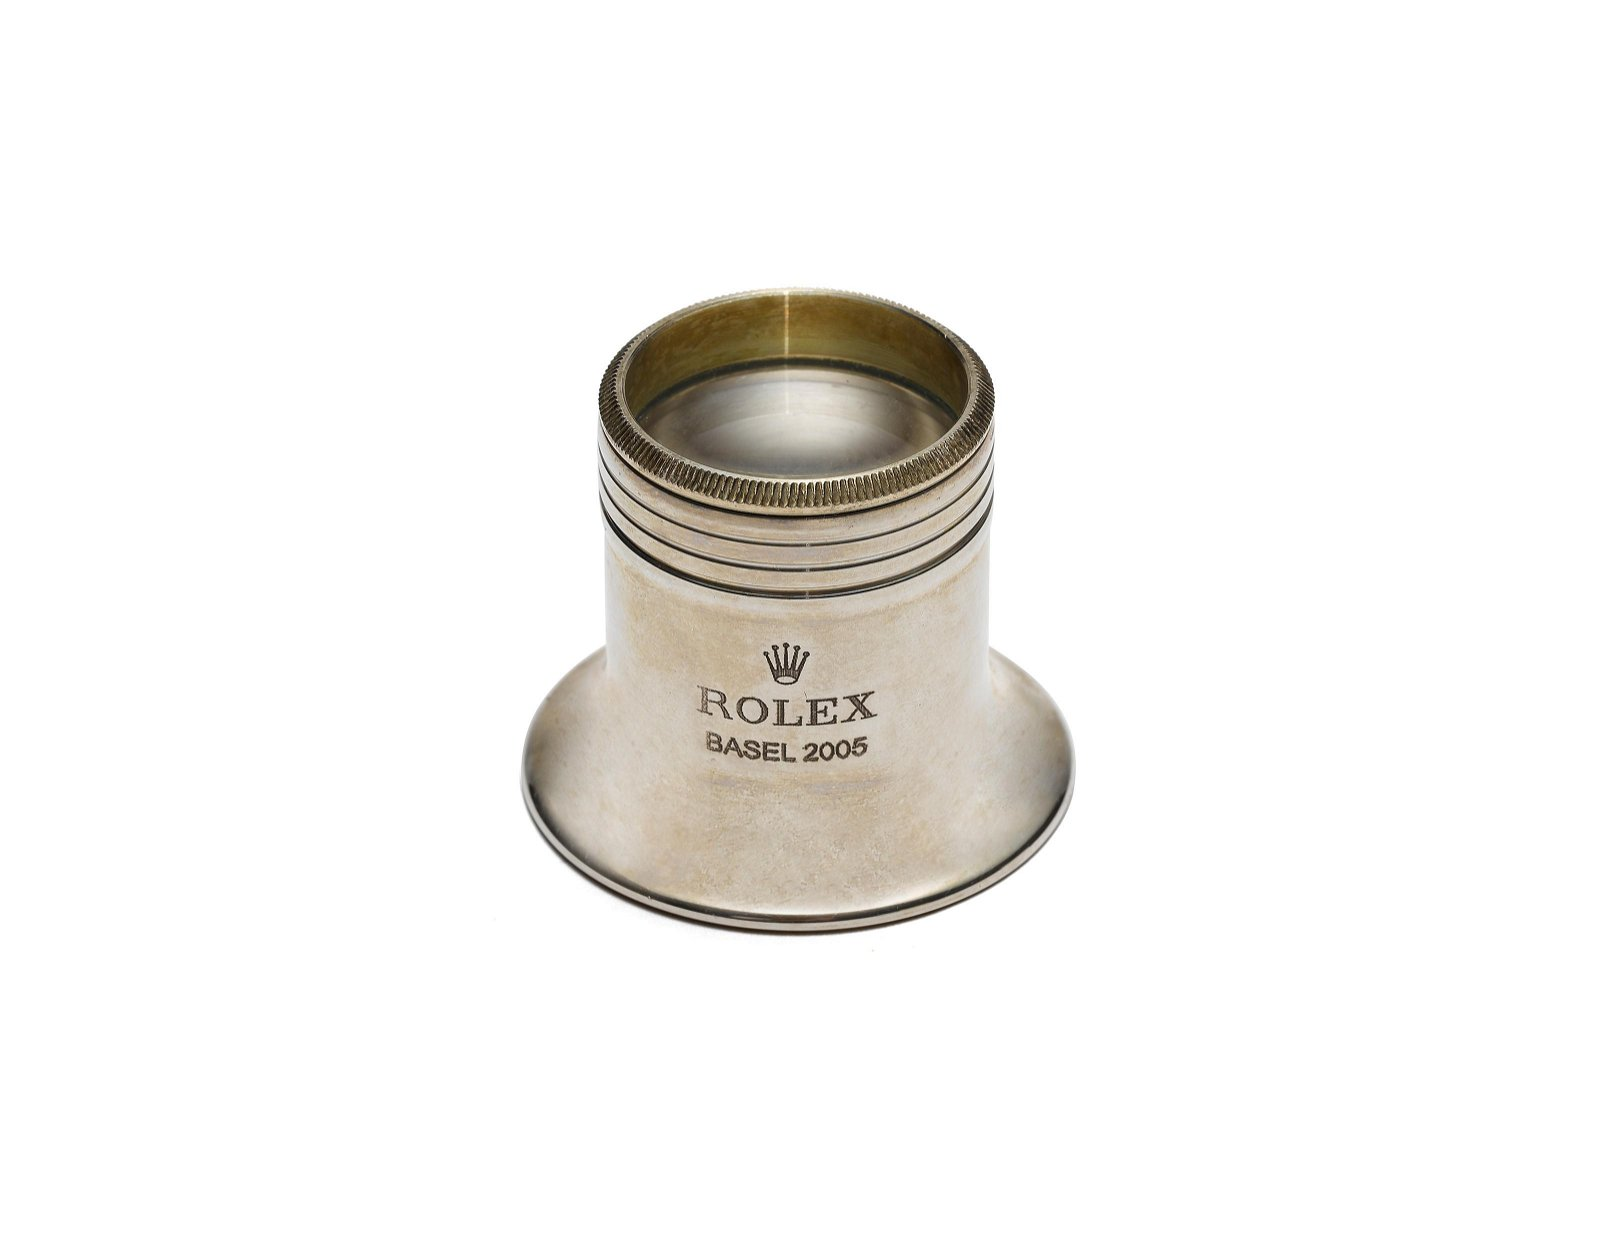 ROLEX, A SILVERED LOUPE